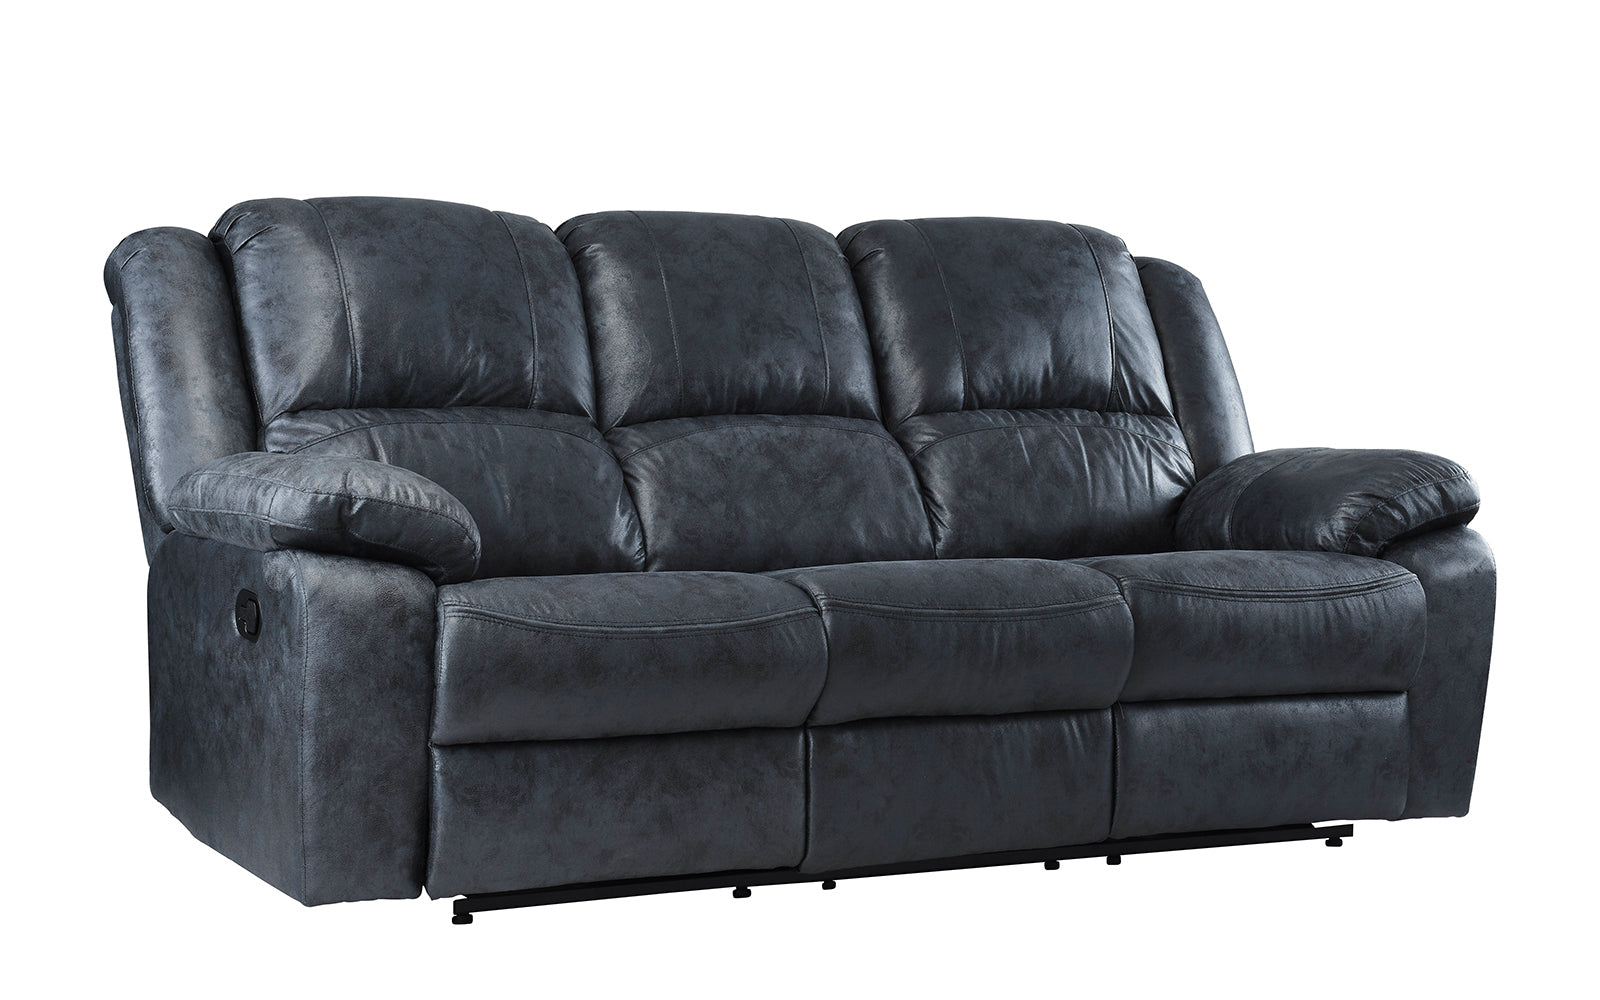 Overstuffed leather chair - Jerome Oversized And Overstuffed Living Room Recliner Set